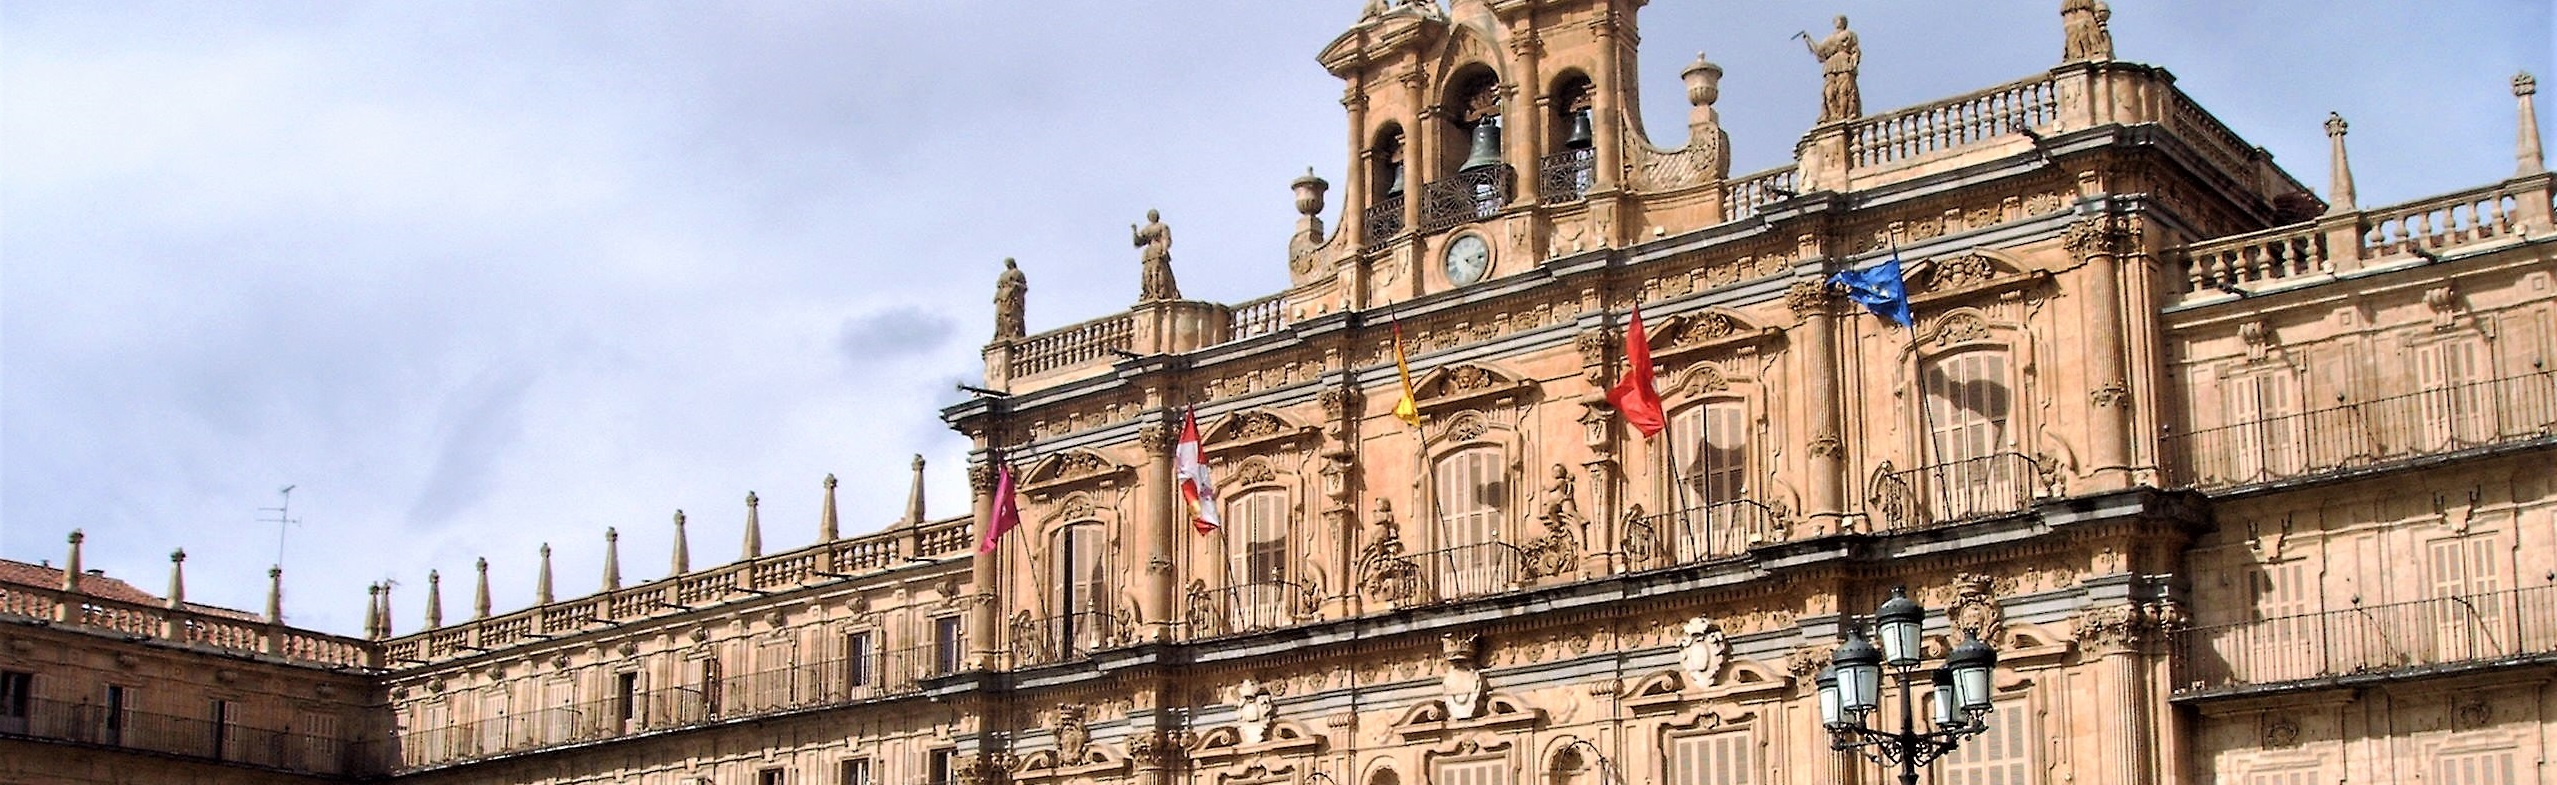 The Plaza Mayor, Salamanca